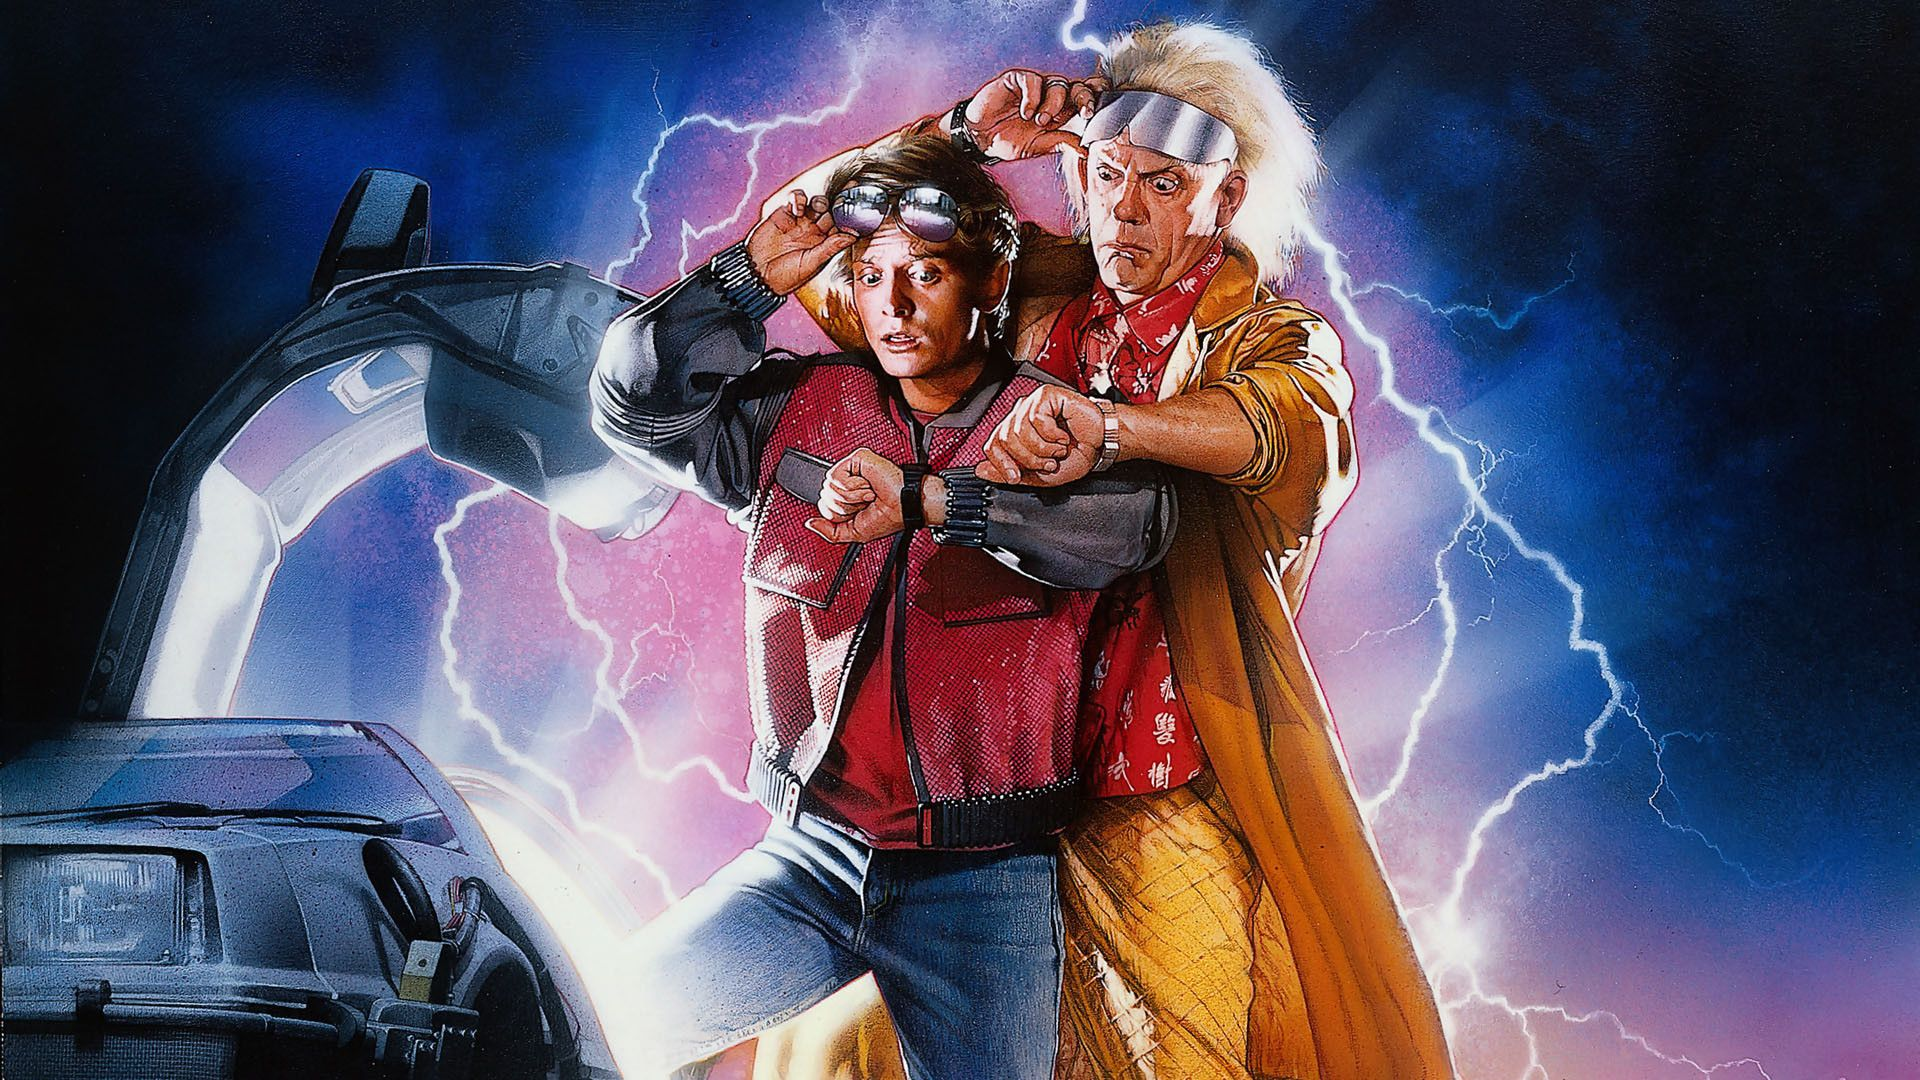 Ritorno al Futuro 2 - Back to the Future II (1989)